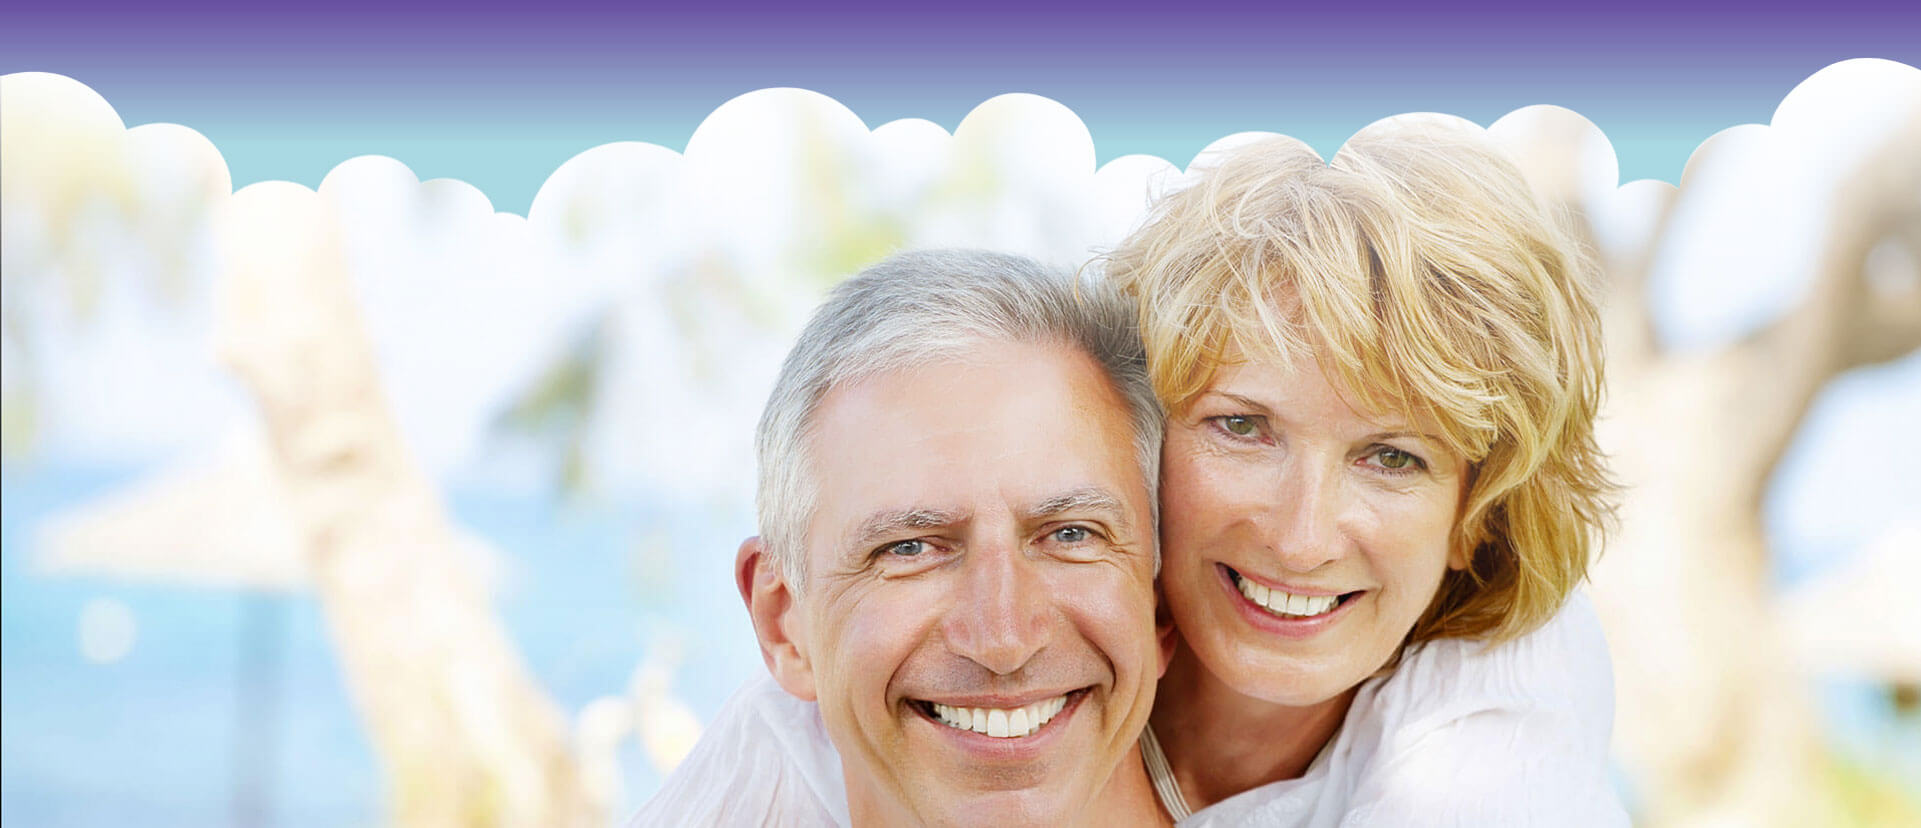 Elderly couple with dentures embracing each other smiling at the camera